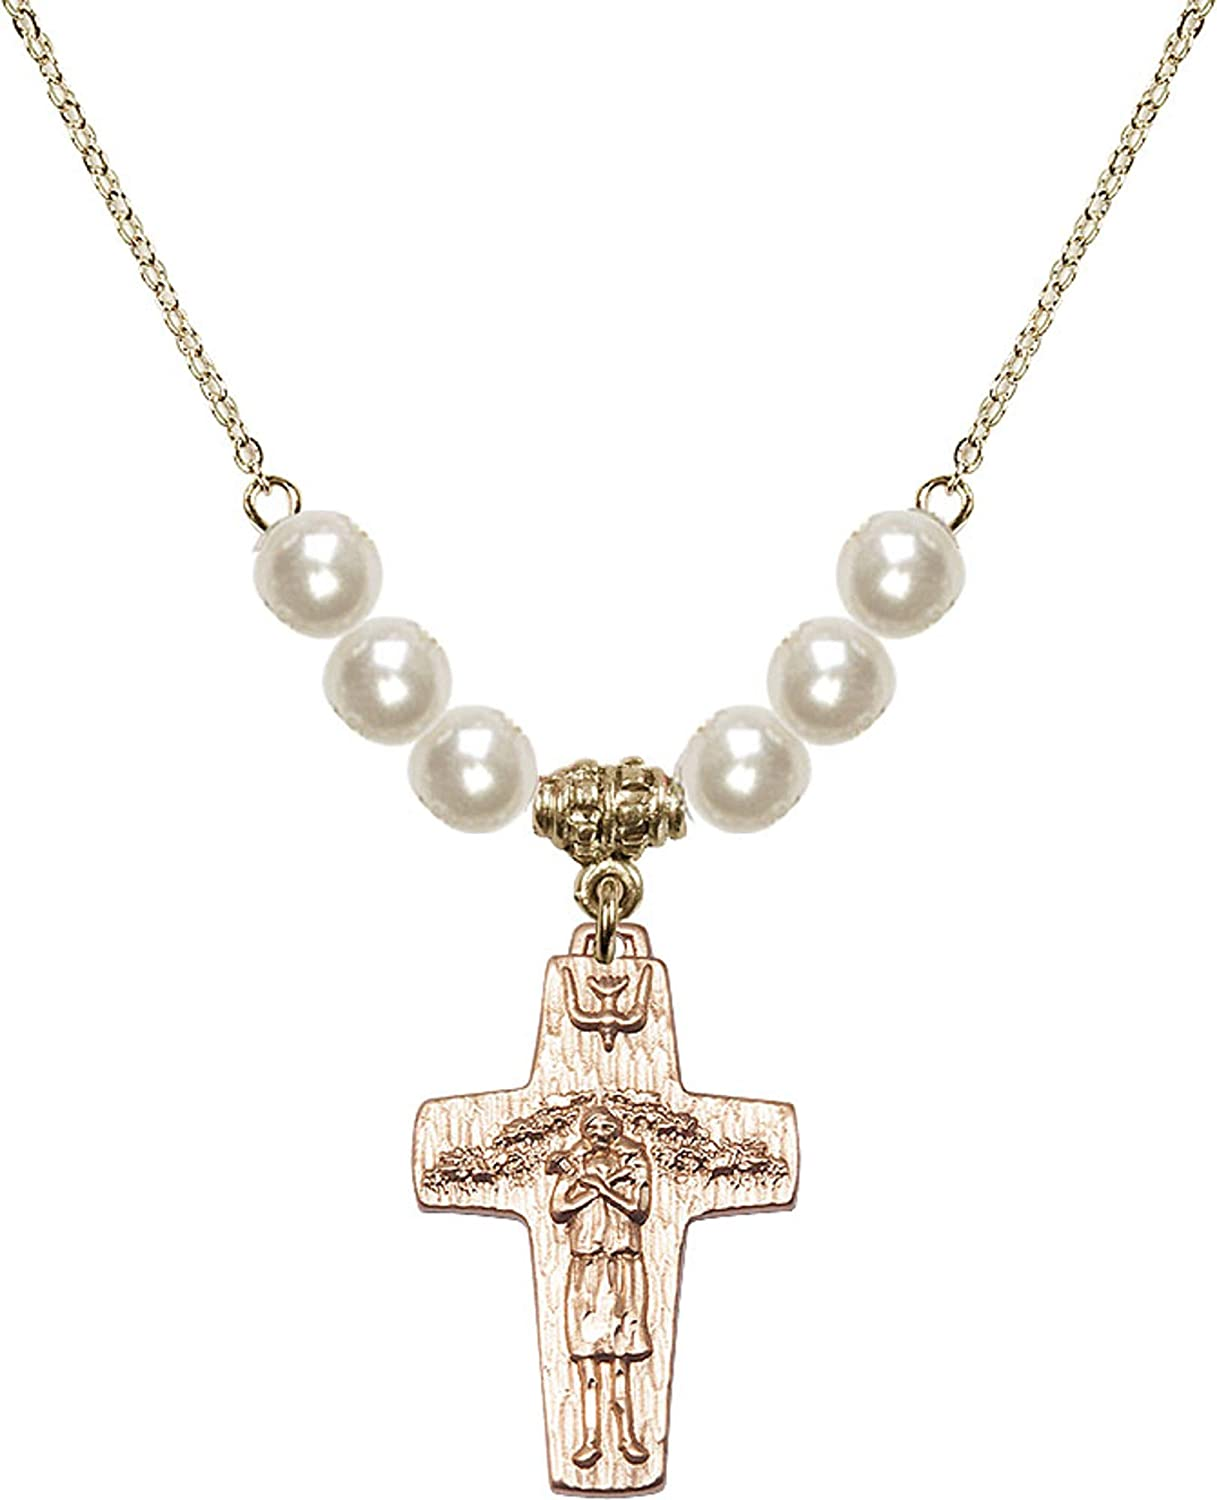 Bonyak Jewelry 18 Inch Hamilton Gold Plated Necklace w// 6mm Faux-Pearl Beads and Papal Crucifix Charm